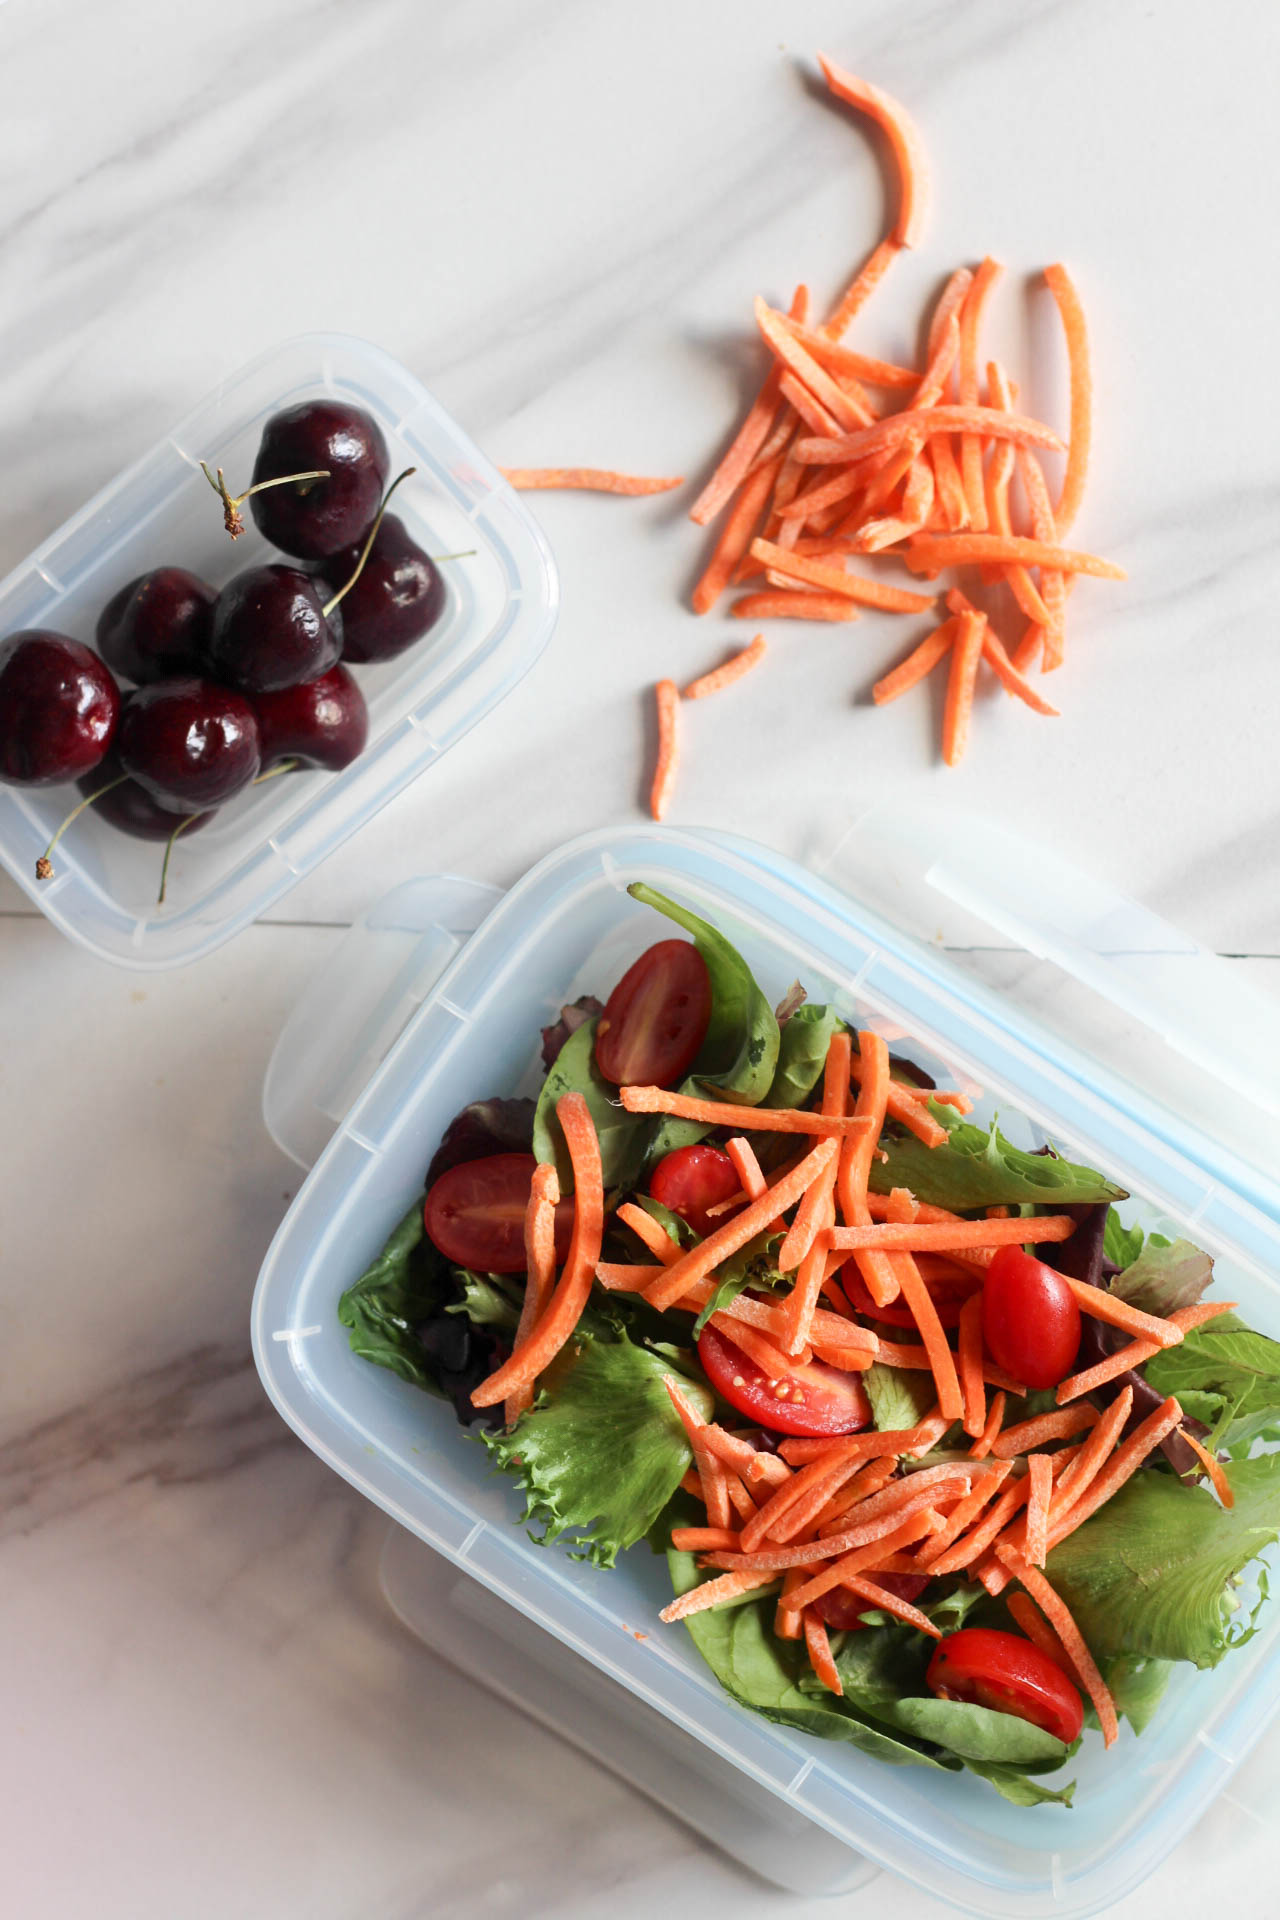 Healthy on the go - quality to go containers